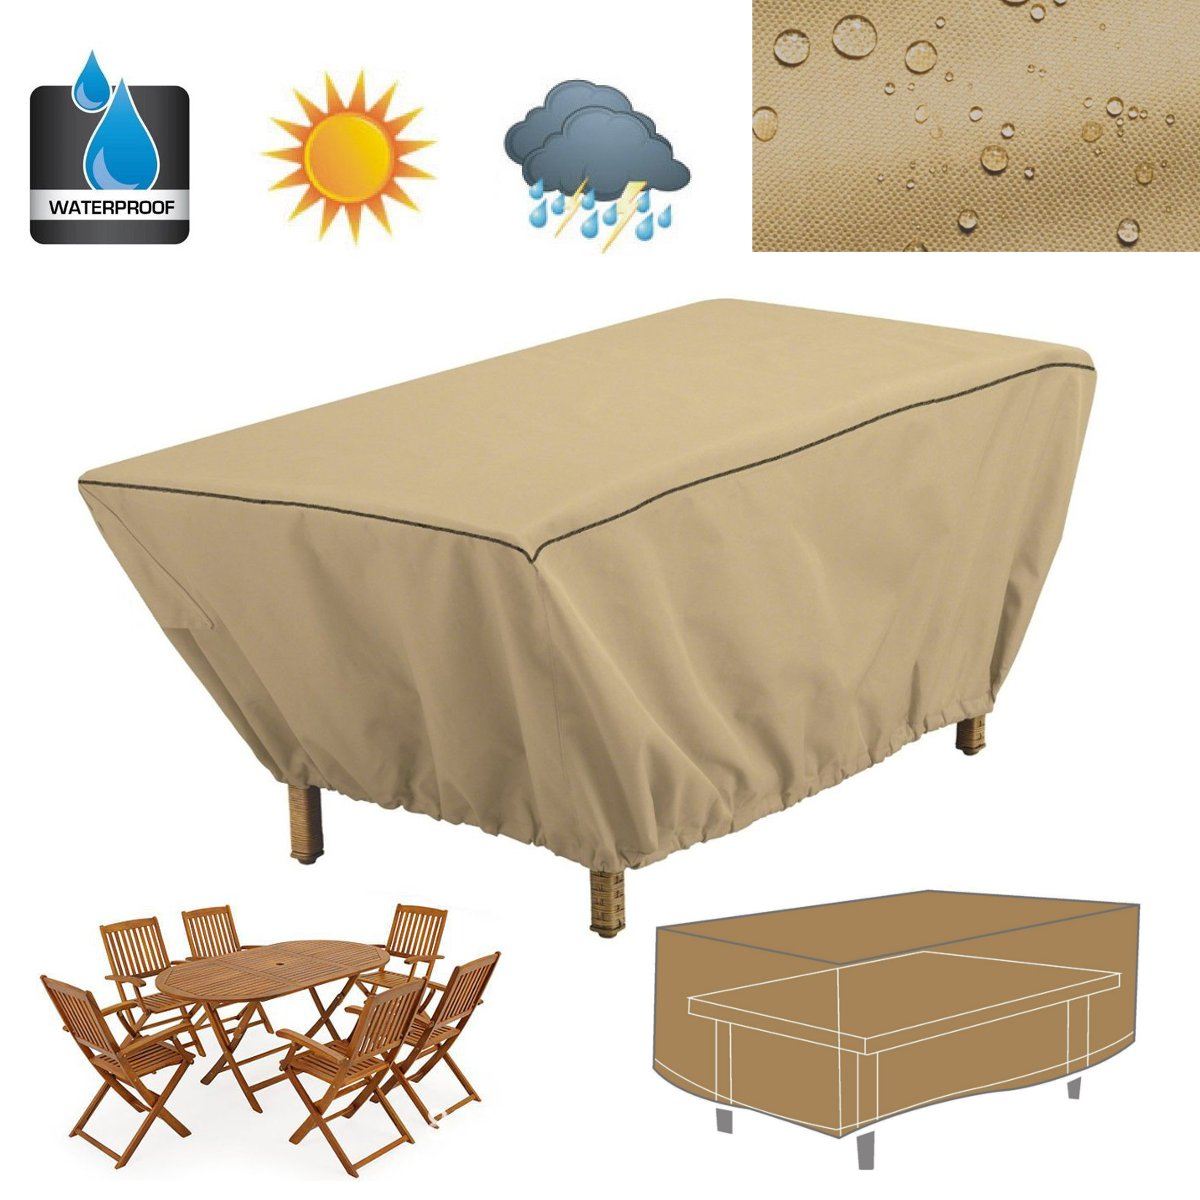 122X76X46cm Dustproof Patio Coffee Table Cover Garden Outdoor Furniture Protective Cover Waterproof Table Cloth Textiles Favor(China (Mainland))